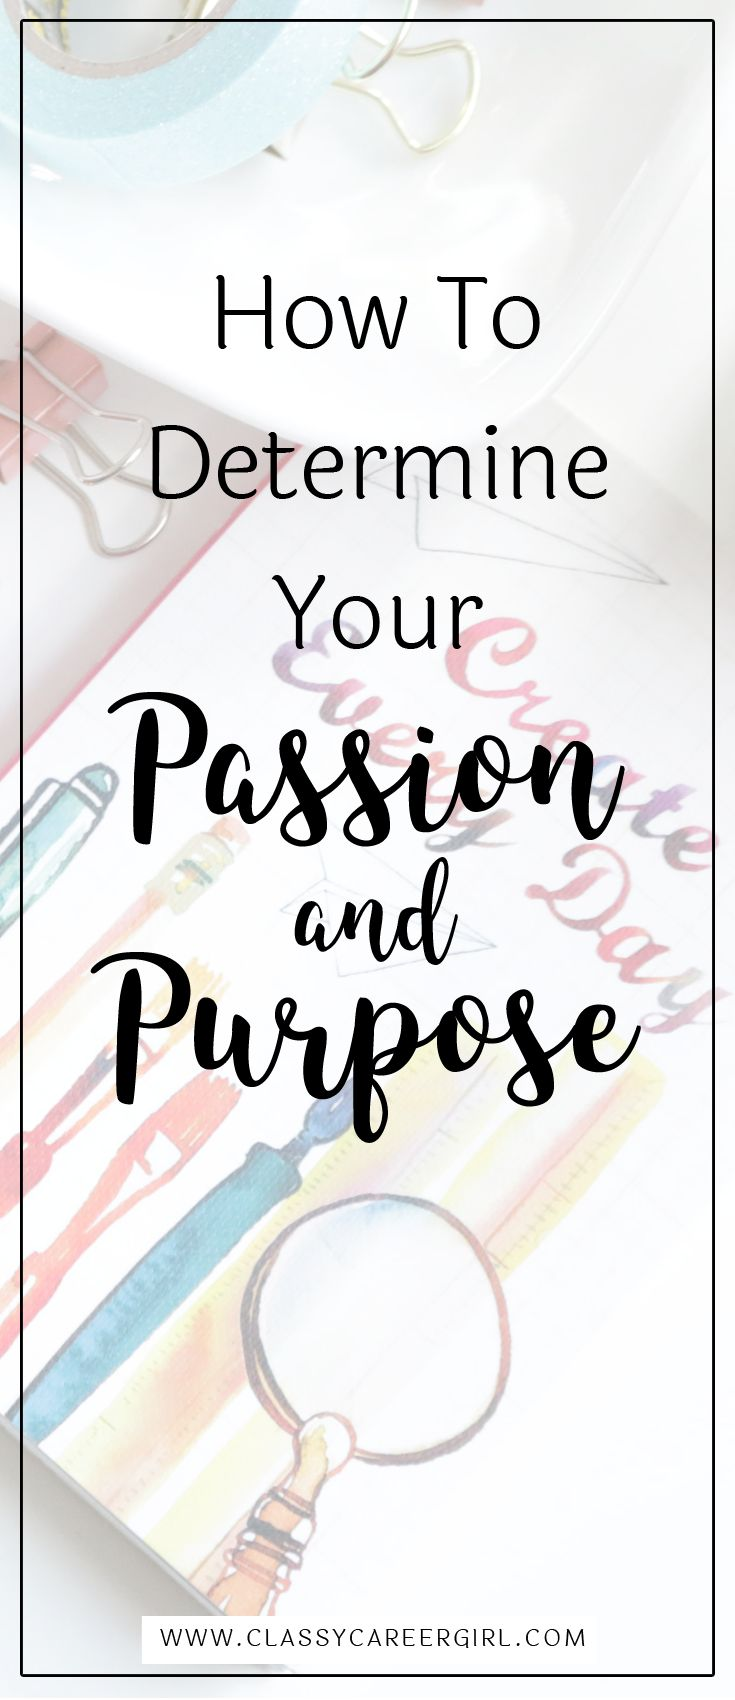 How To Determine Your Passion and Purpose  The best way to find your passion and purpose is to be 100% you and to be your best self. Then, your calling will emerge. The key is to do what you can, where you are with everything you've got.  Read More: http://www.classycareergirl.com/2016/09/your-passion-and-purpose/